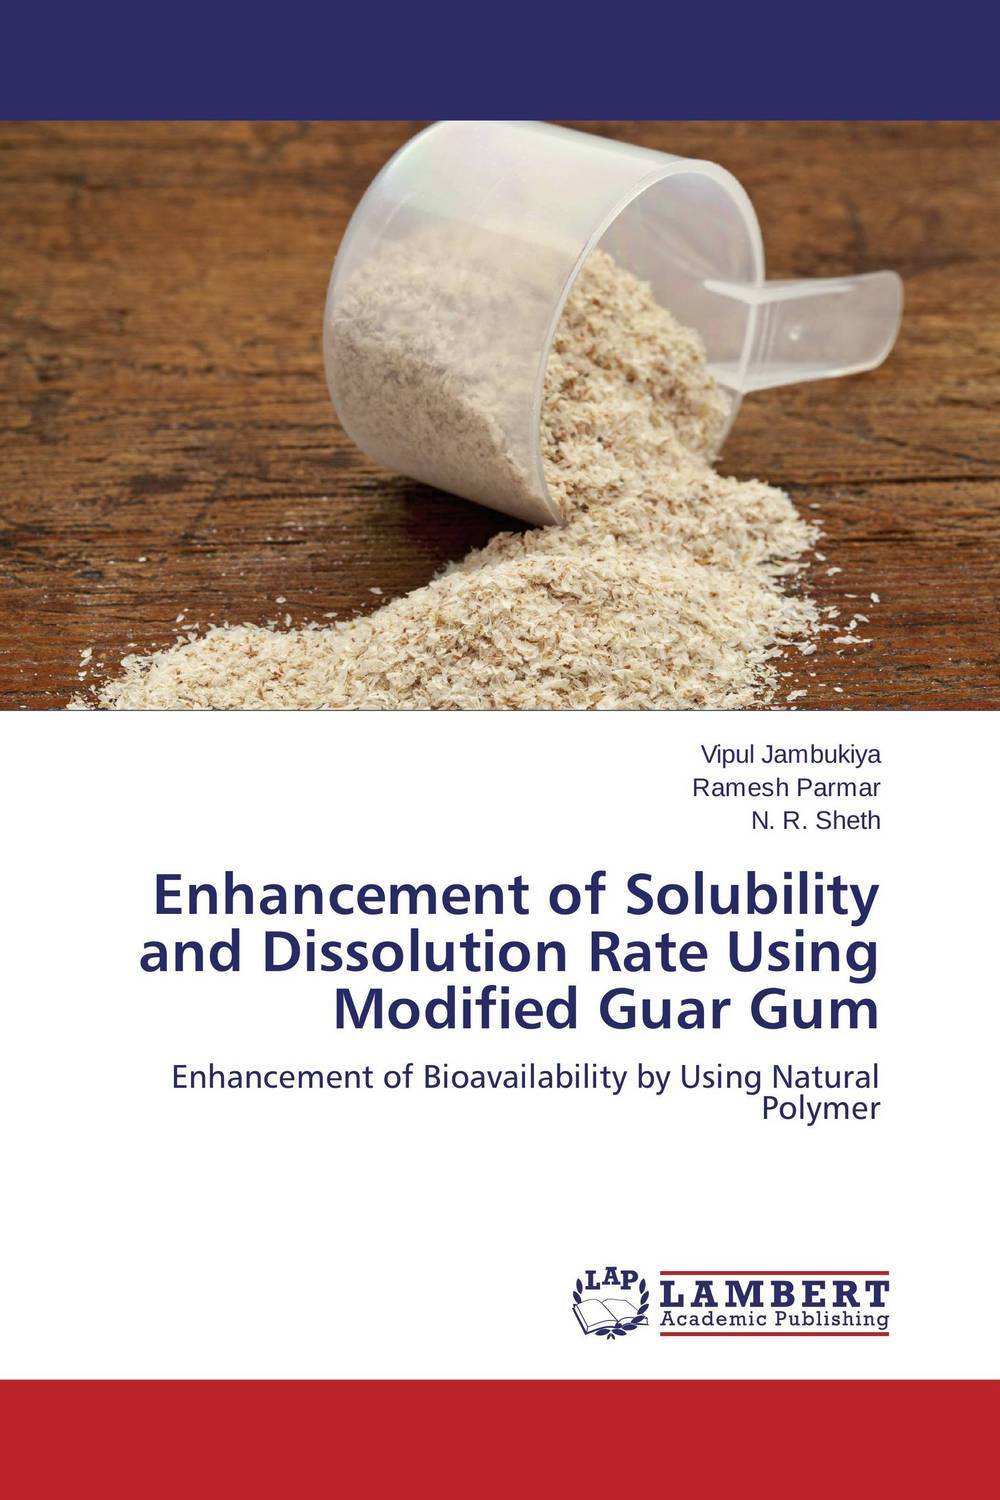 Enhancement of Solubility and Dissolution Rate Using Modified Guar Gum modified pnas synthesis and interaction studies with dna